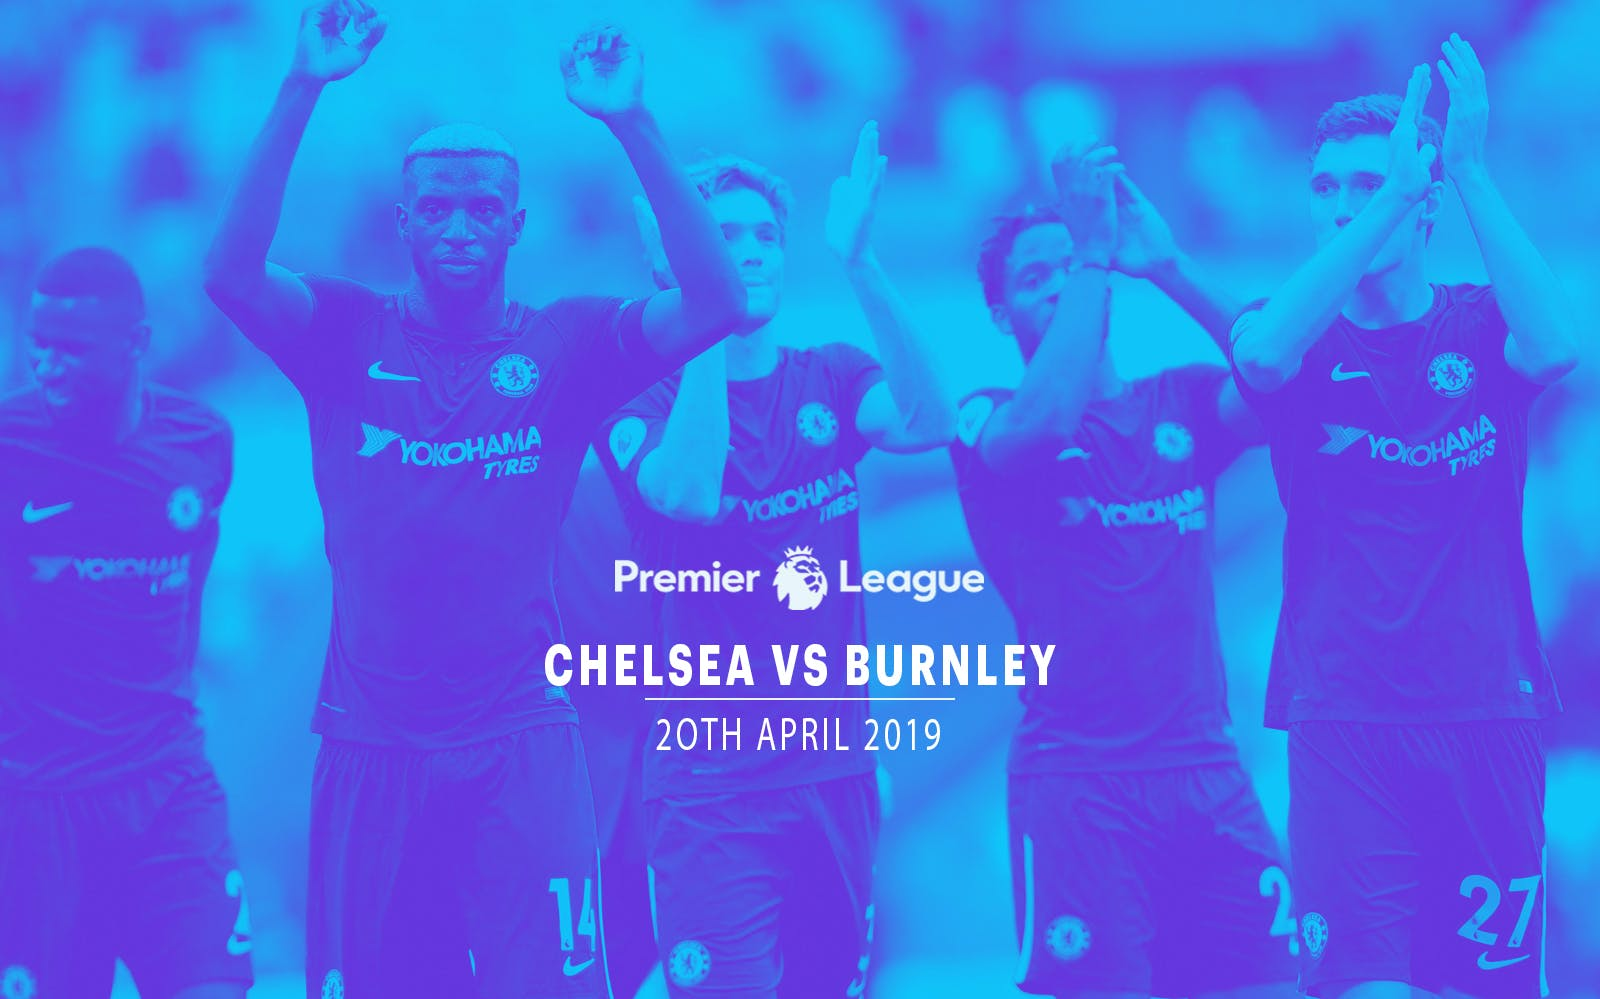 Chelsea vs Burnley - 20th Apr'19